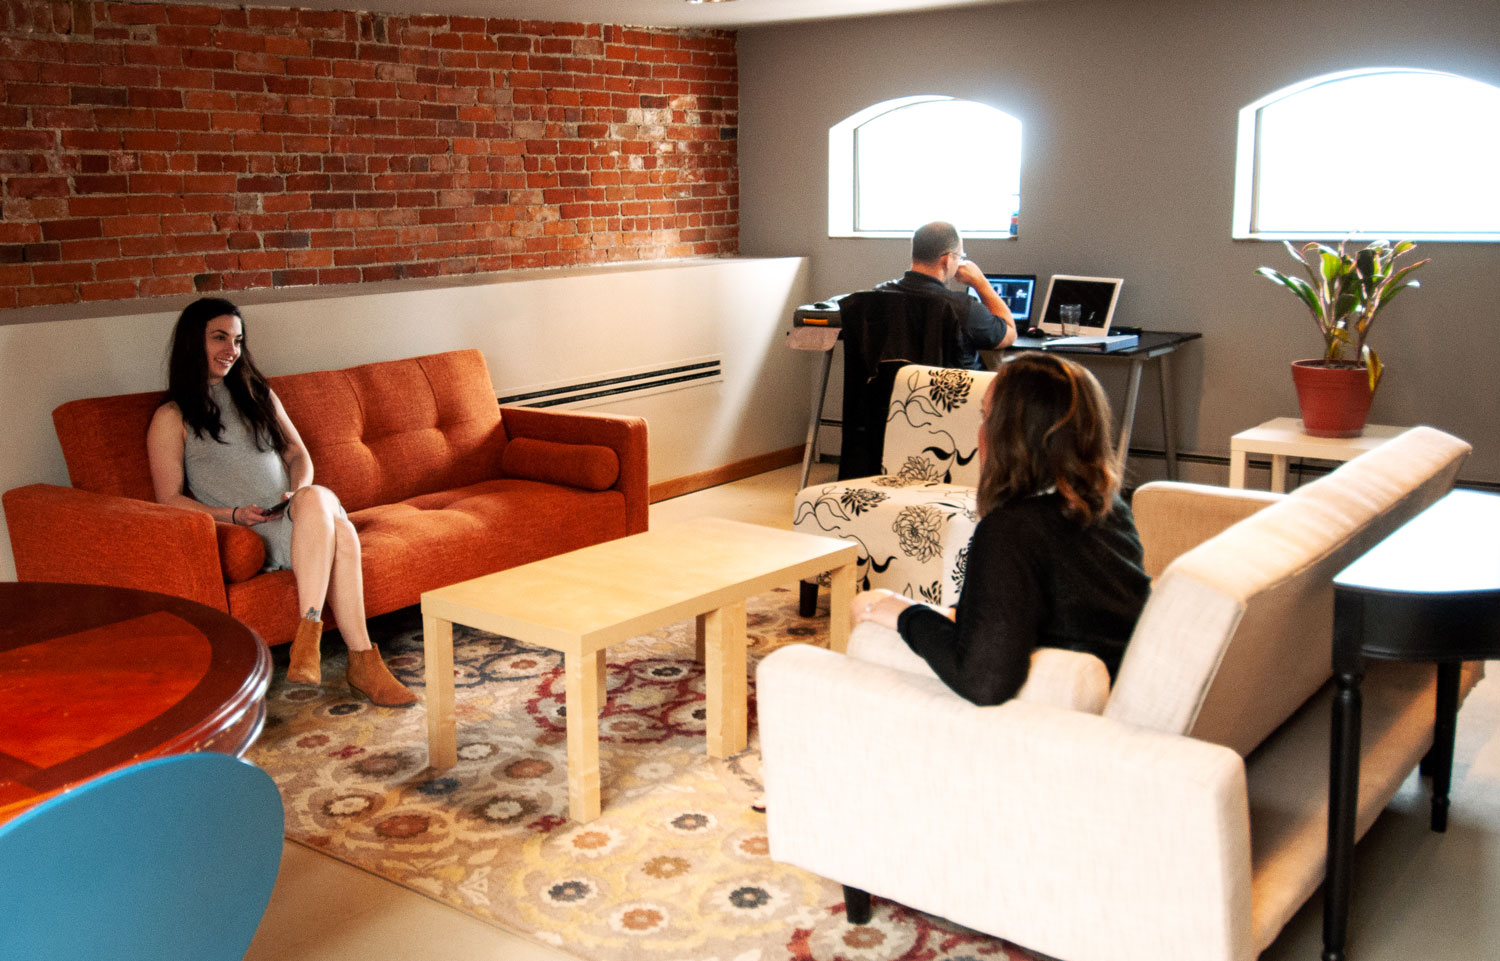 THE coLAB coworking loft